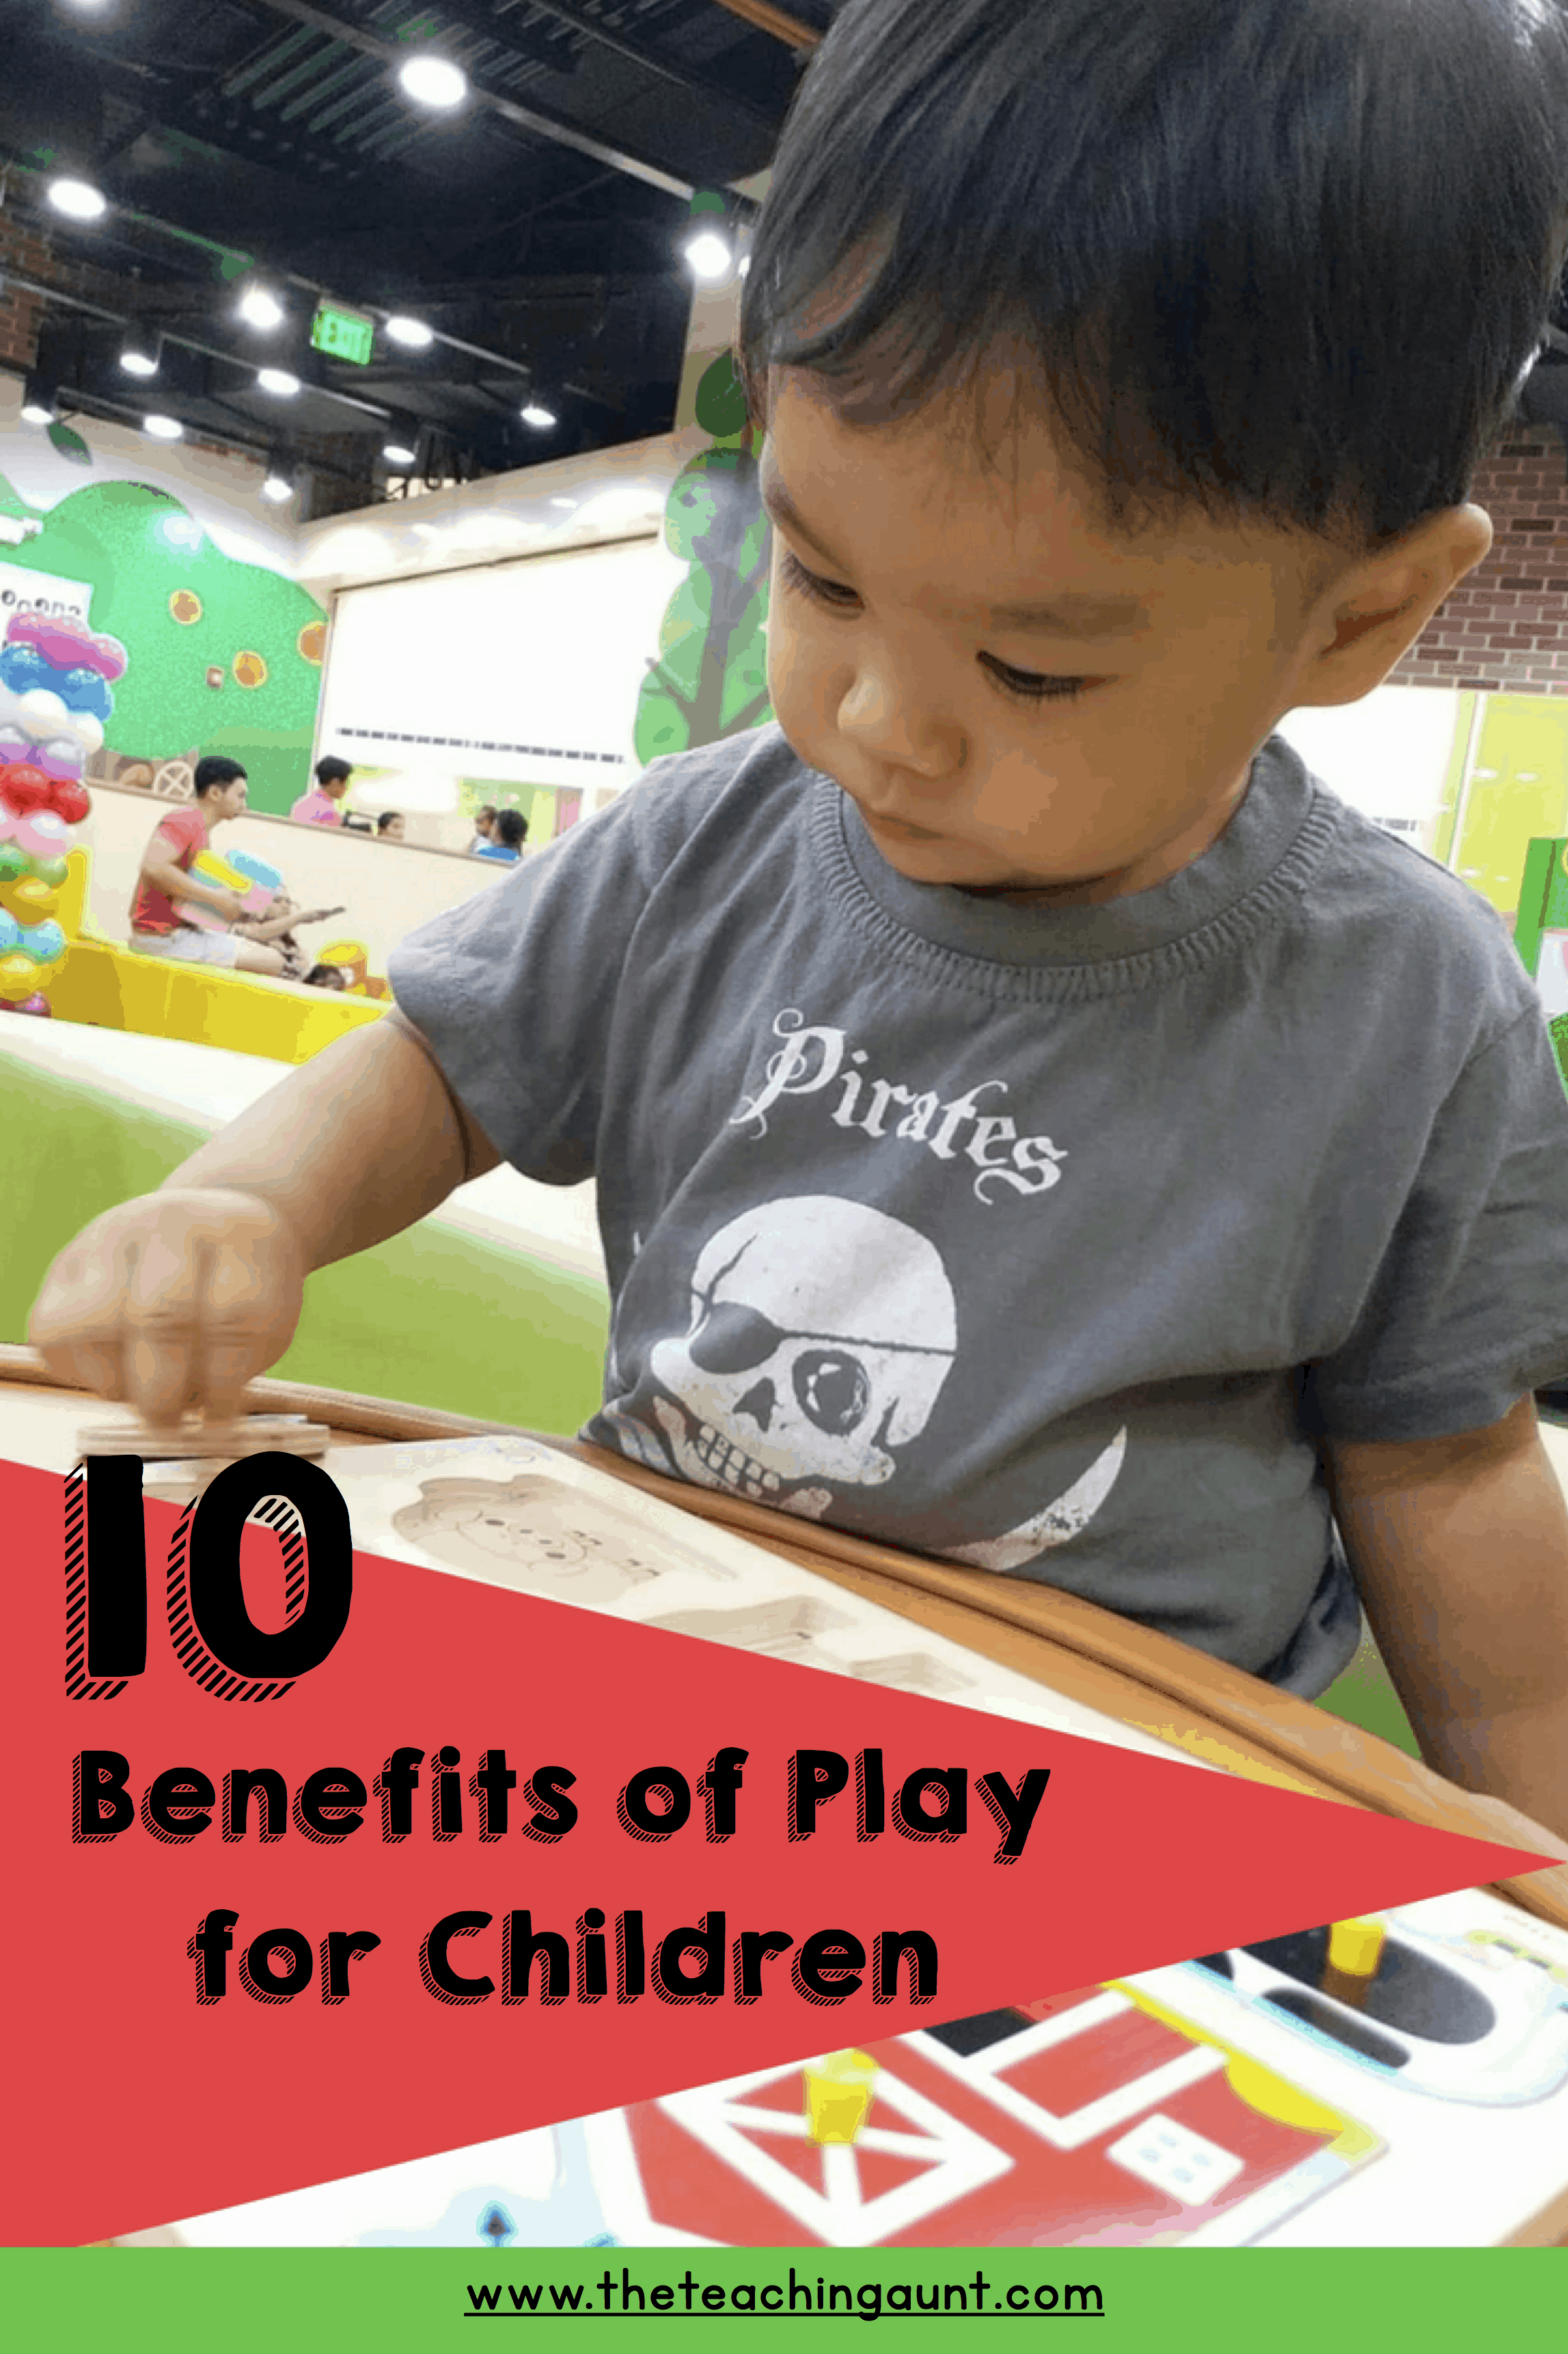 10 Benefits of Play for Children